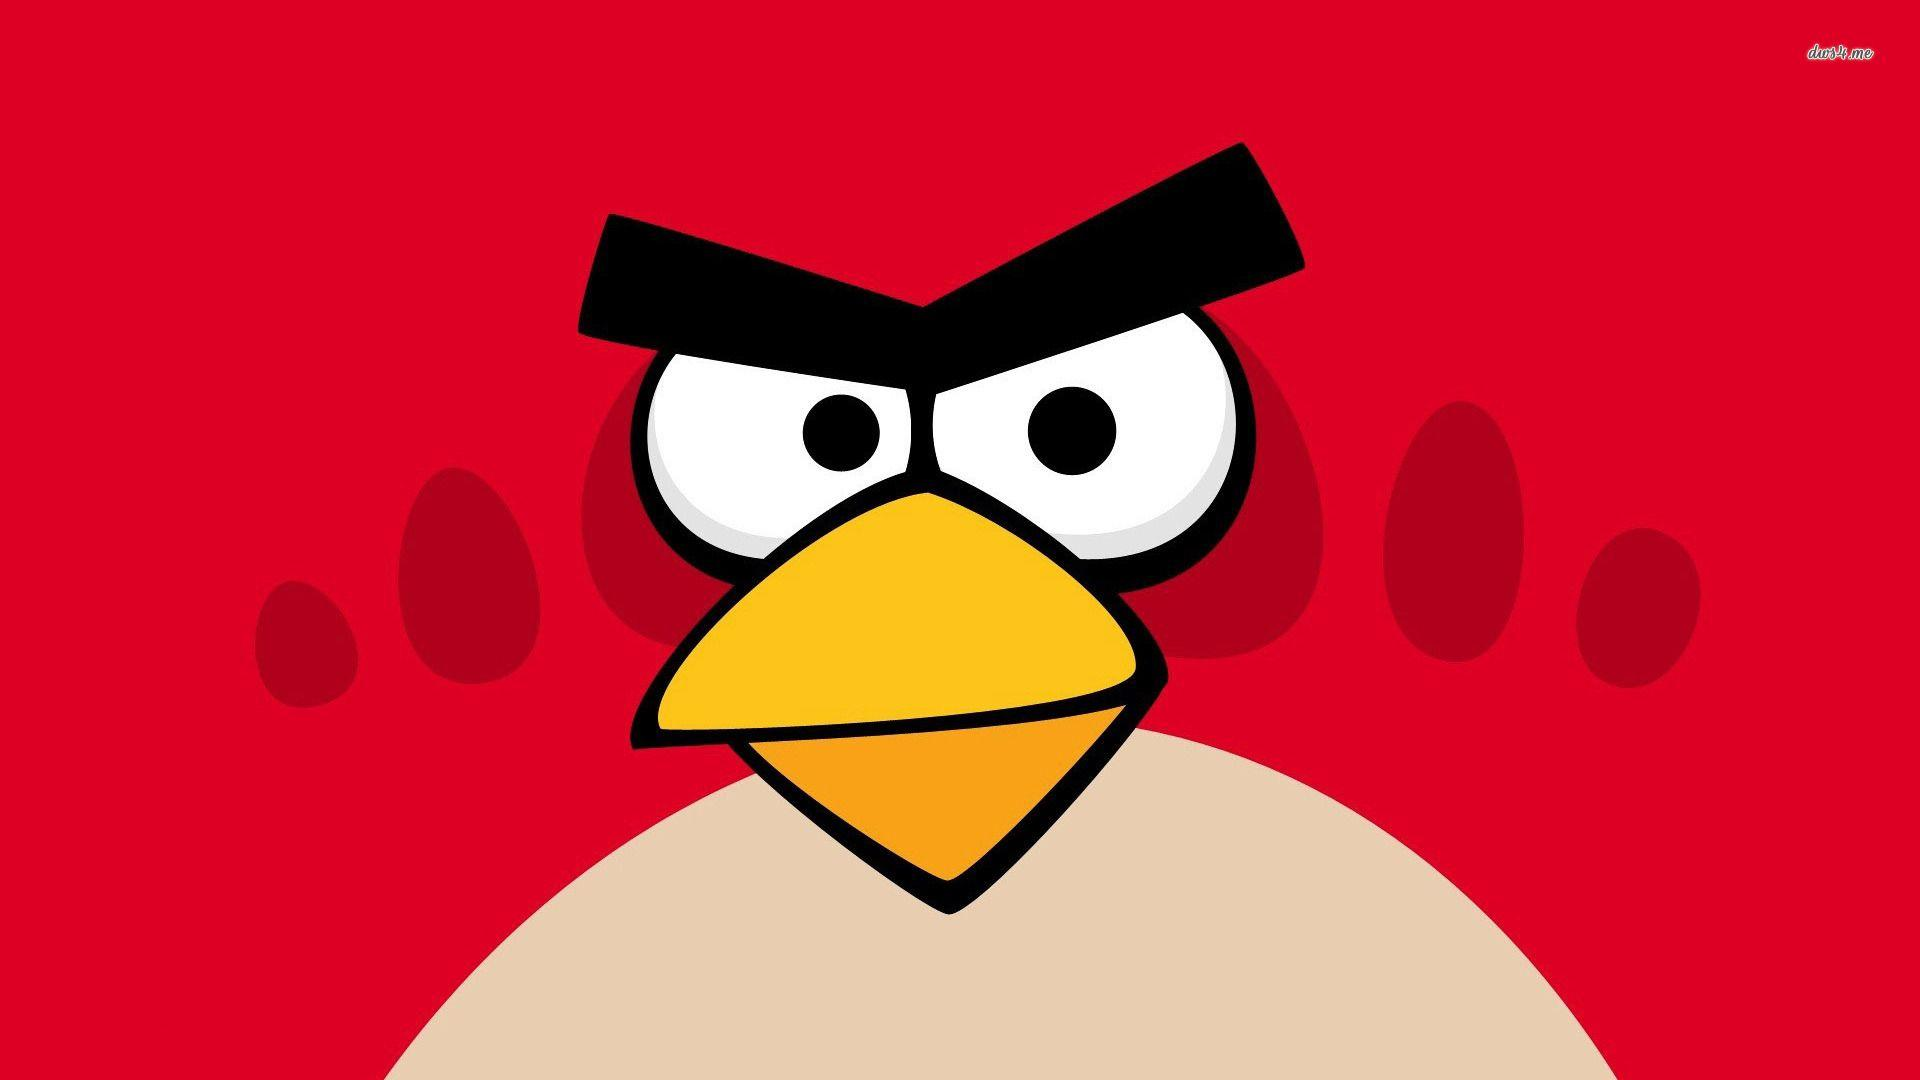 Angry Birds Wallpaper Download - wallpaper hd